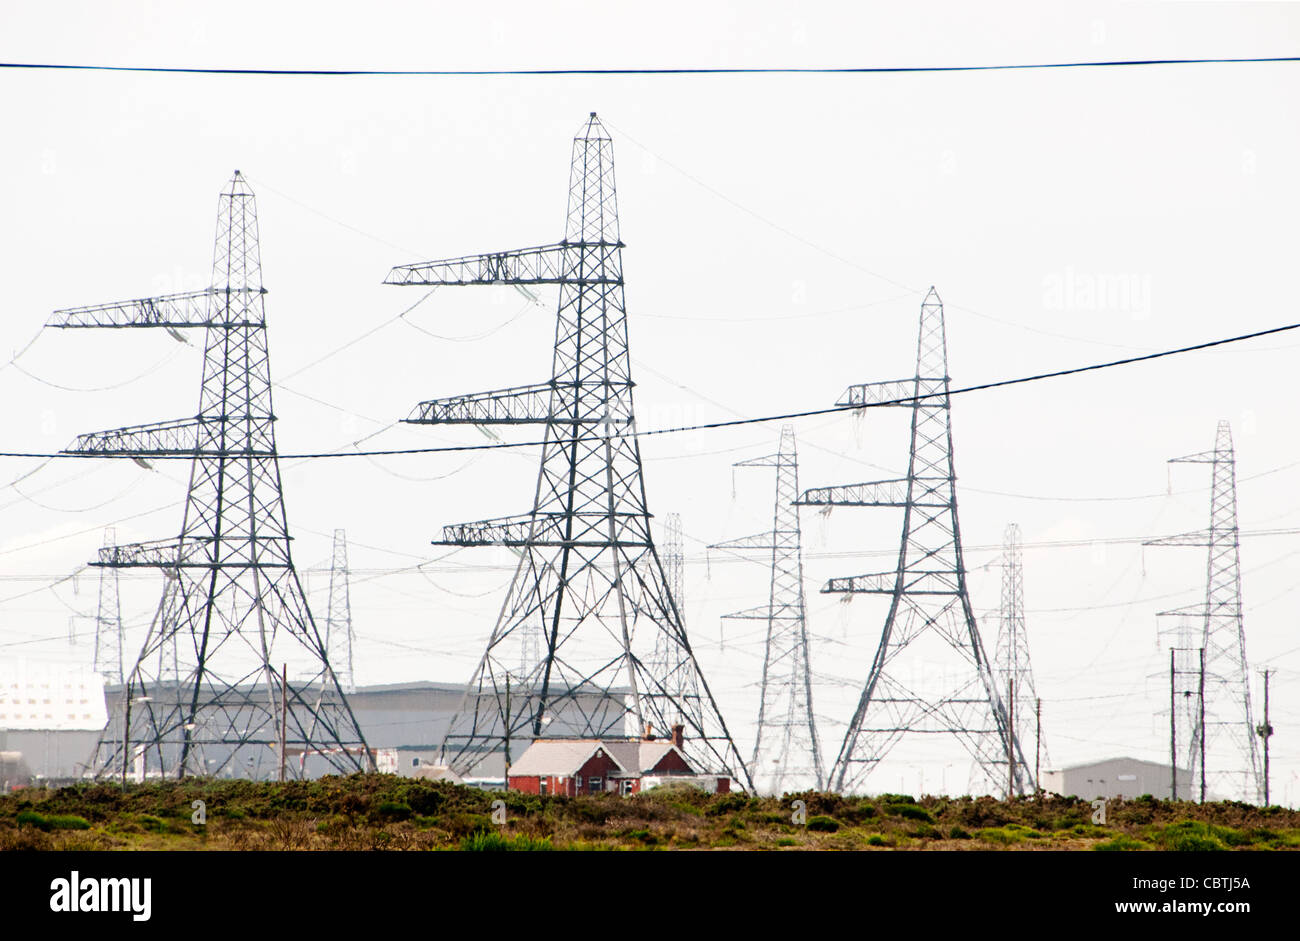 Fishermen' small houses contrasting with power lines of the Nuclear Power station, Dungeness, Kent, UK - Stock Image